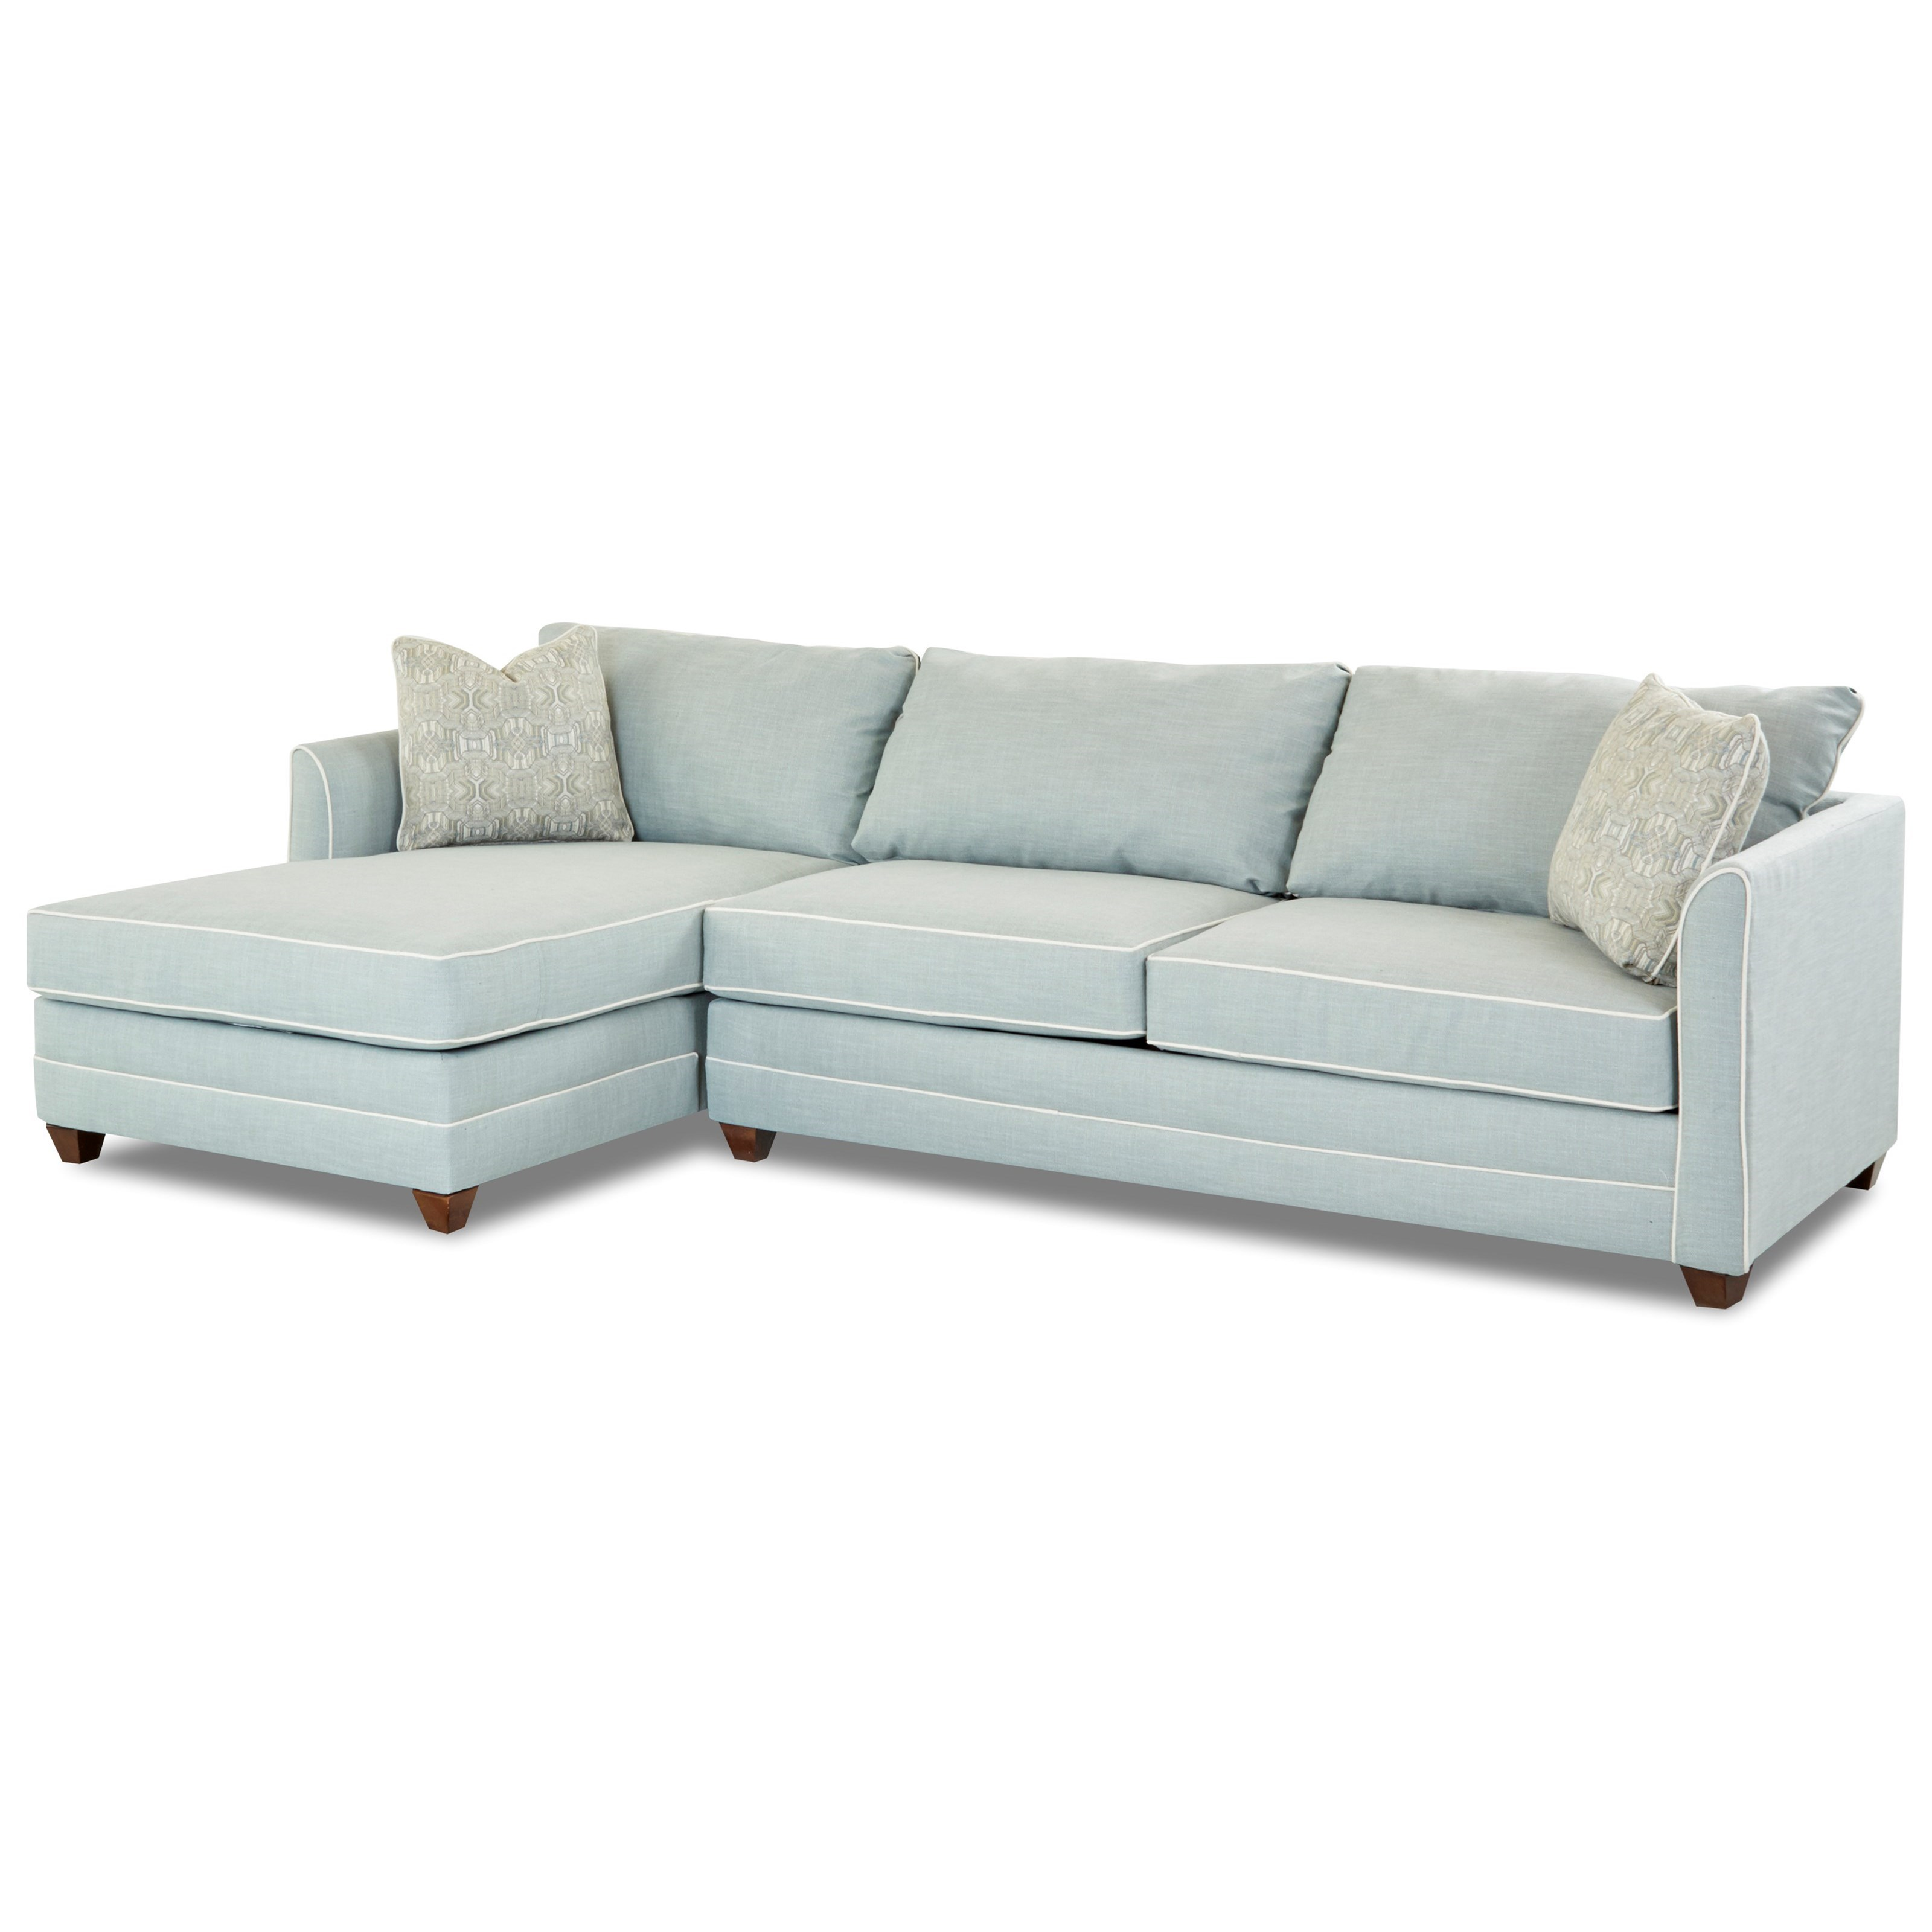 Klaussner Tilly Two Piece Sectional Sofa With RAF Sleeper Sofa And Enso  Memory Foam Mattress